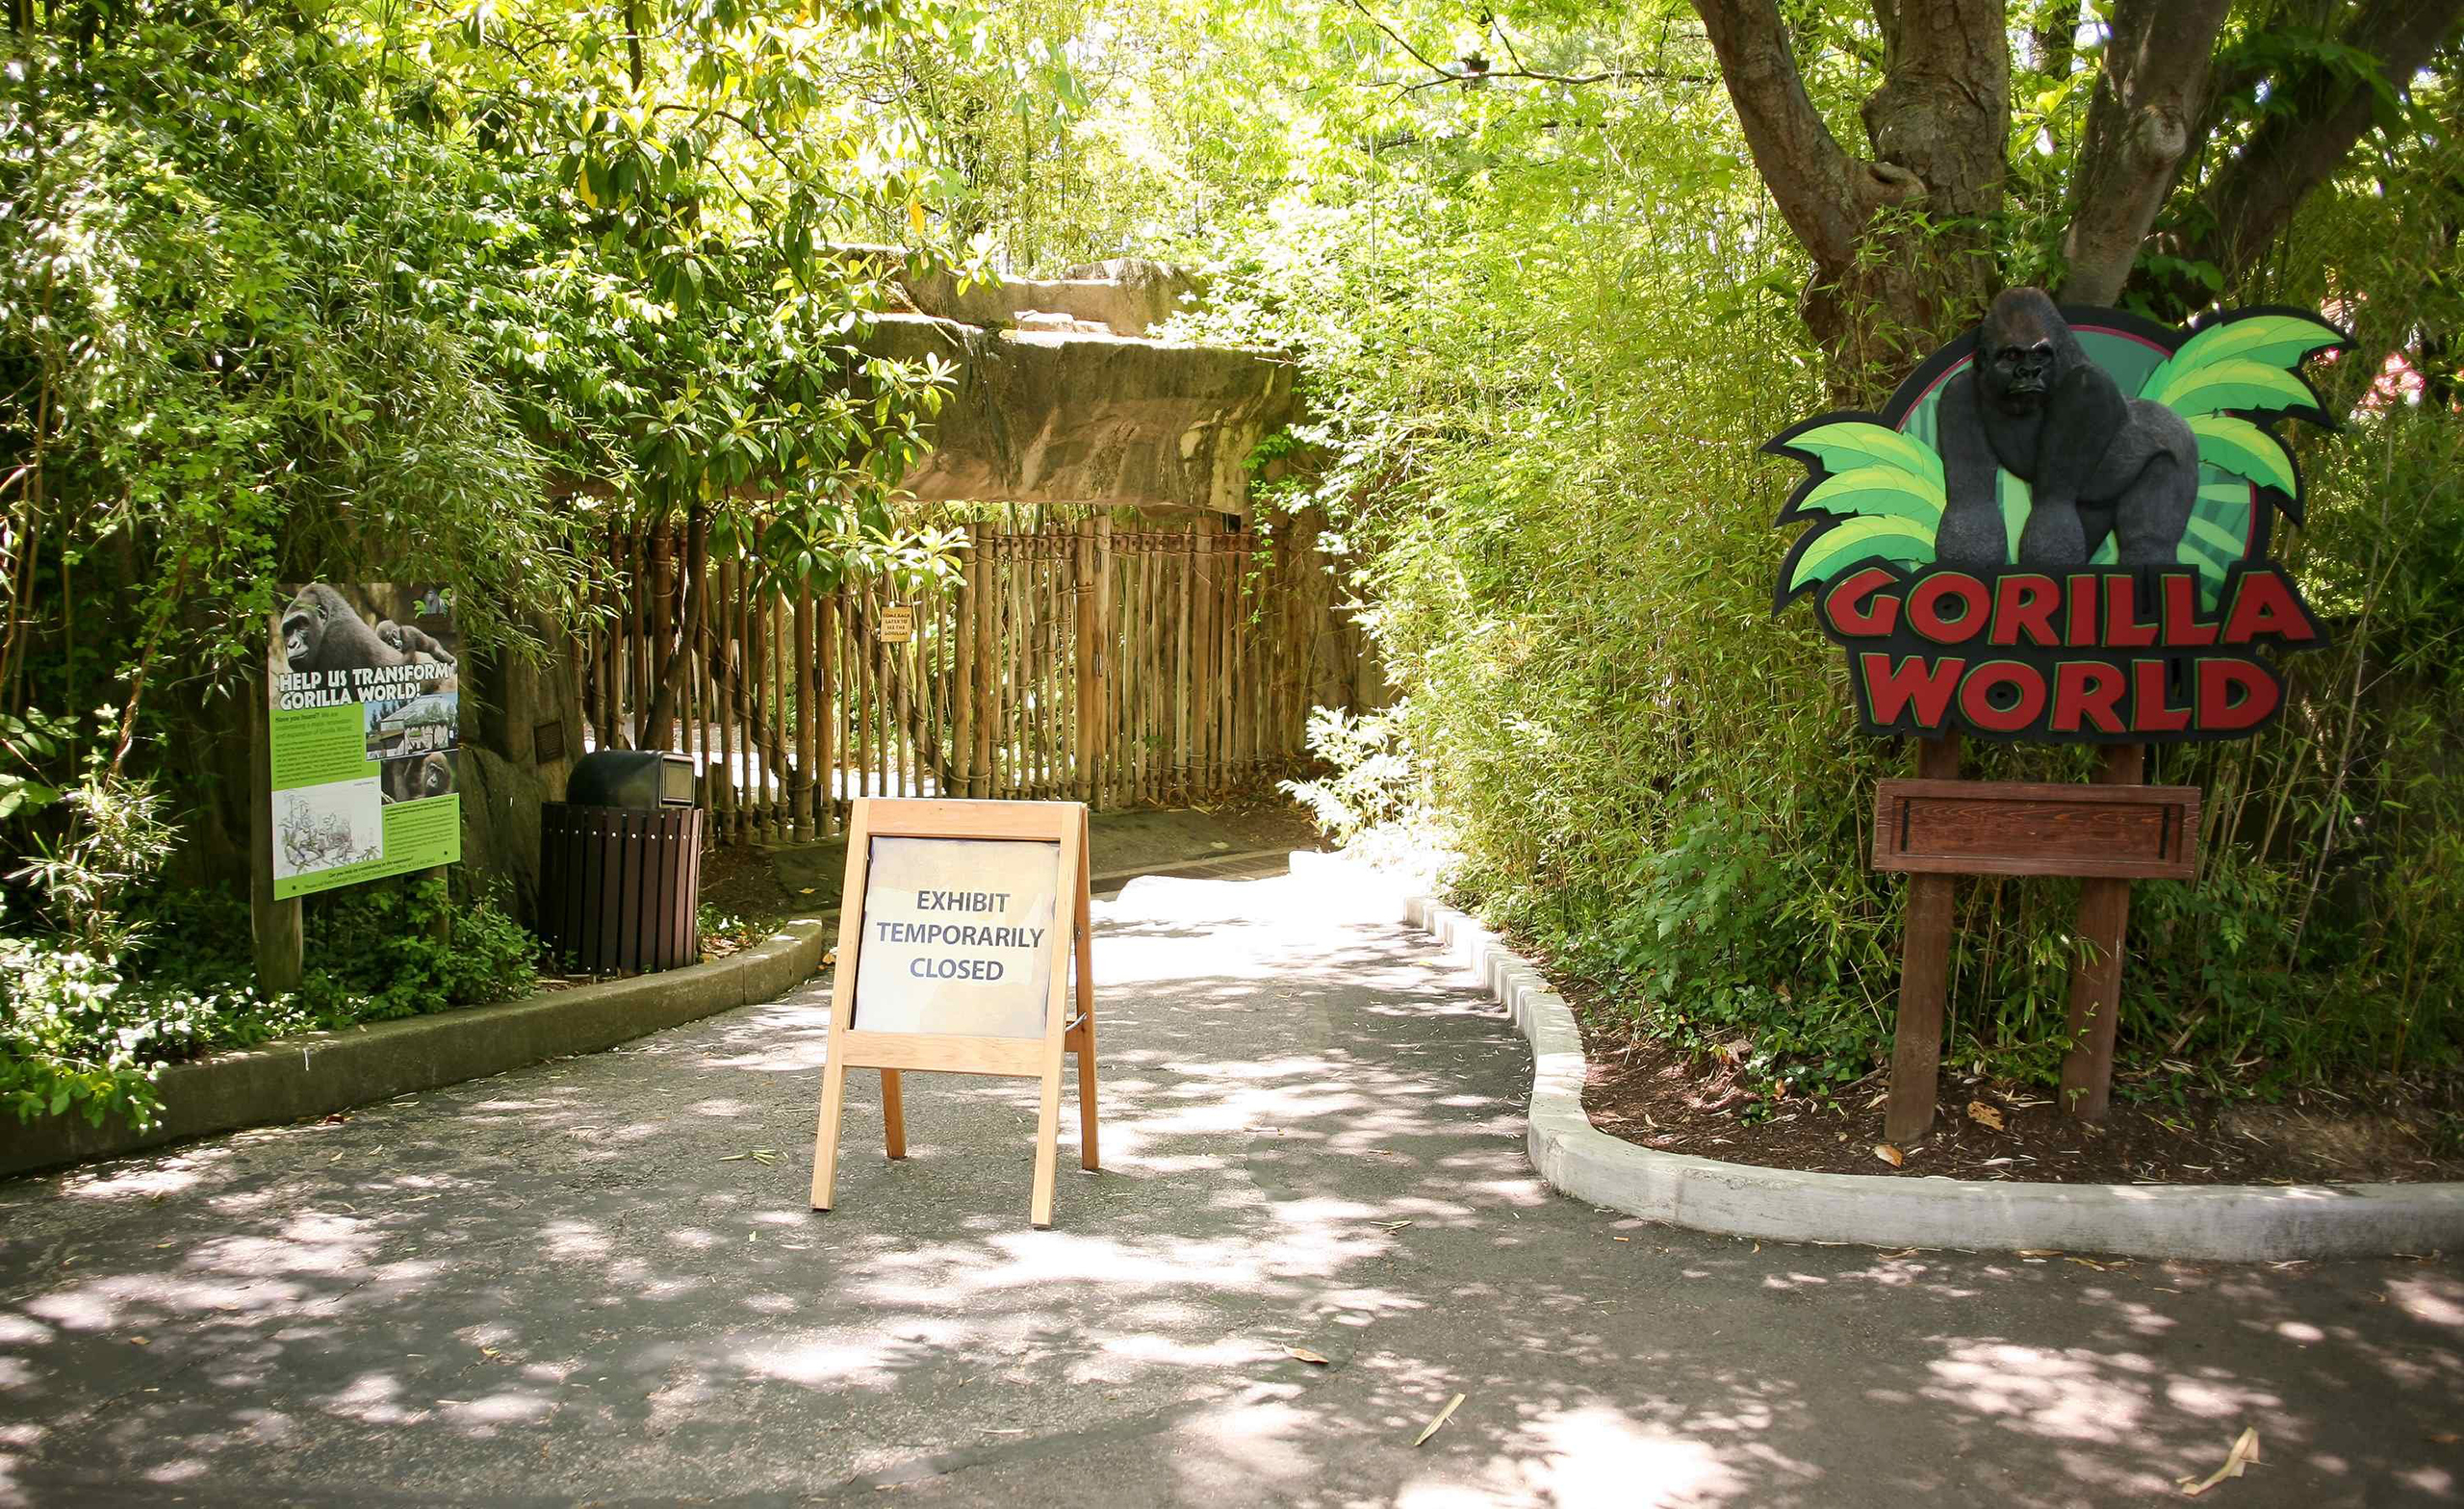 The entrance to the Cincinnati Zoo's Gorilla World exhibit is closed, two days after a boy tumbled into its moat and officials were forced to kill Harambe, a Western lowland gorilla, in Cincinnati, Ohio, on May 30, 2016.